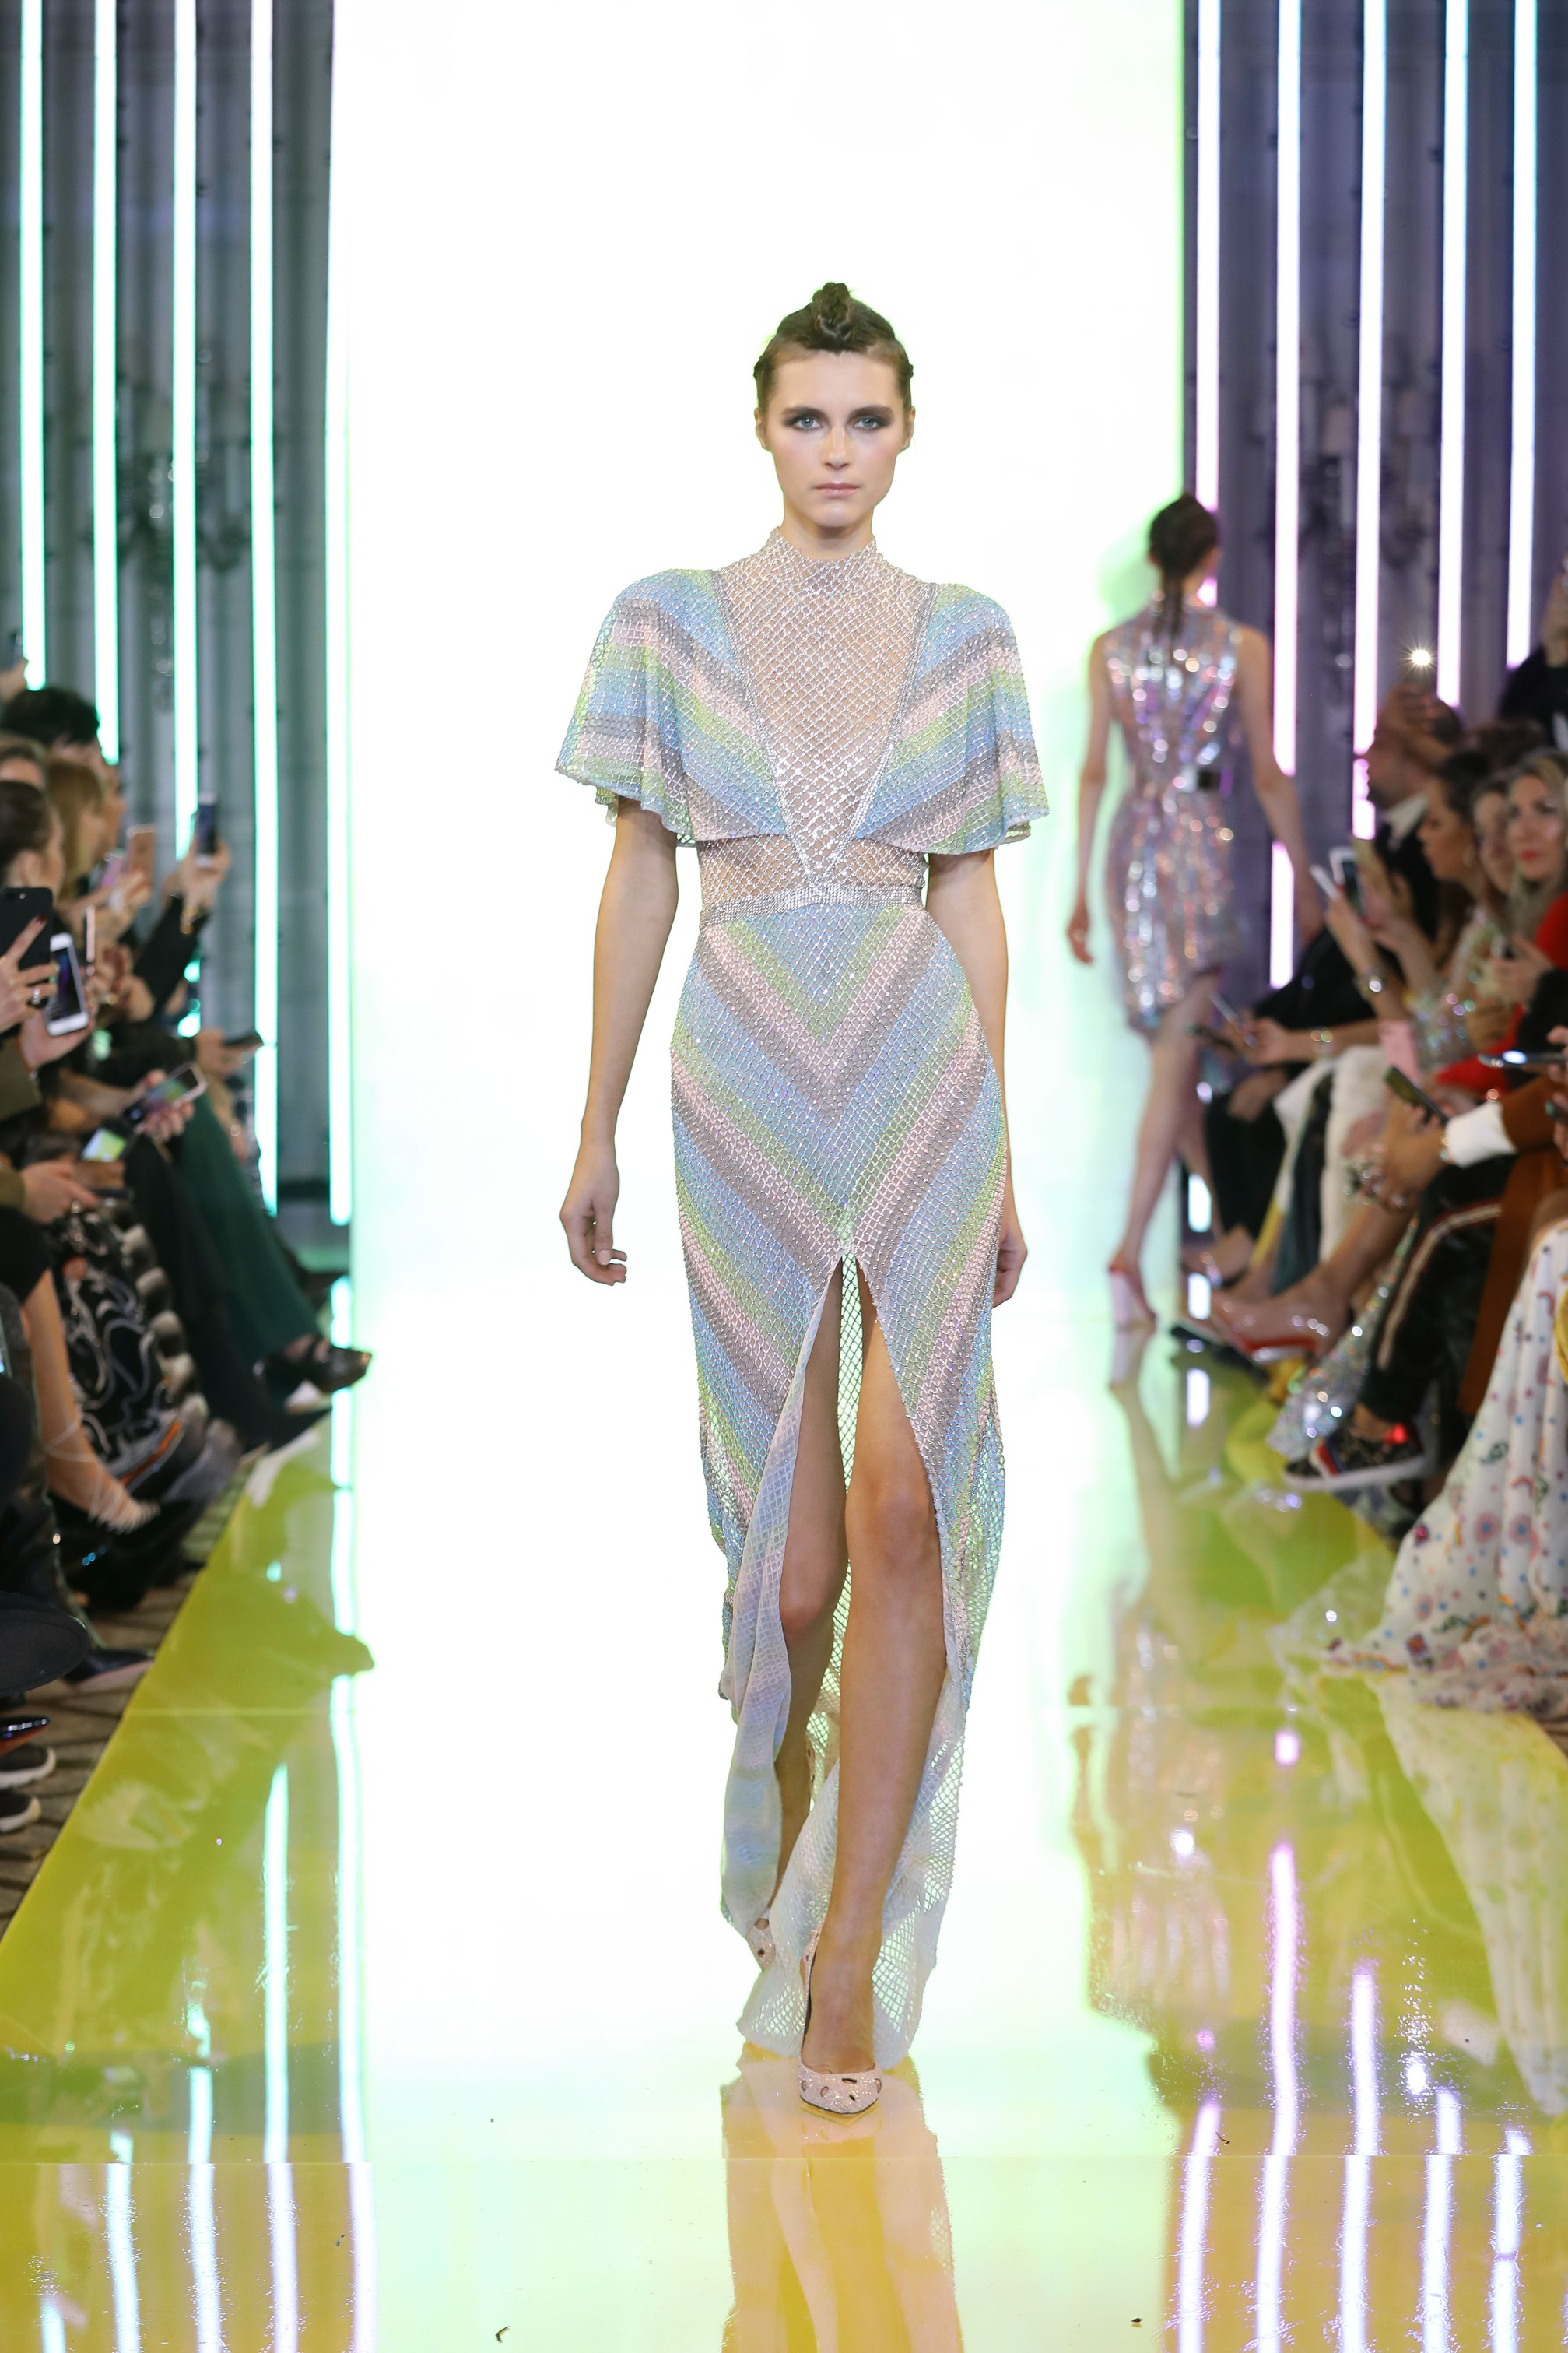 SS19-37- Pastel Shades Of Glass Beads And Swarovski Embellishements With Crystalled Neckline Dress.jpg